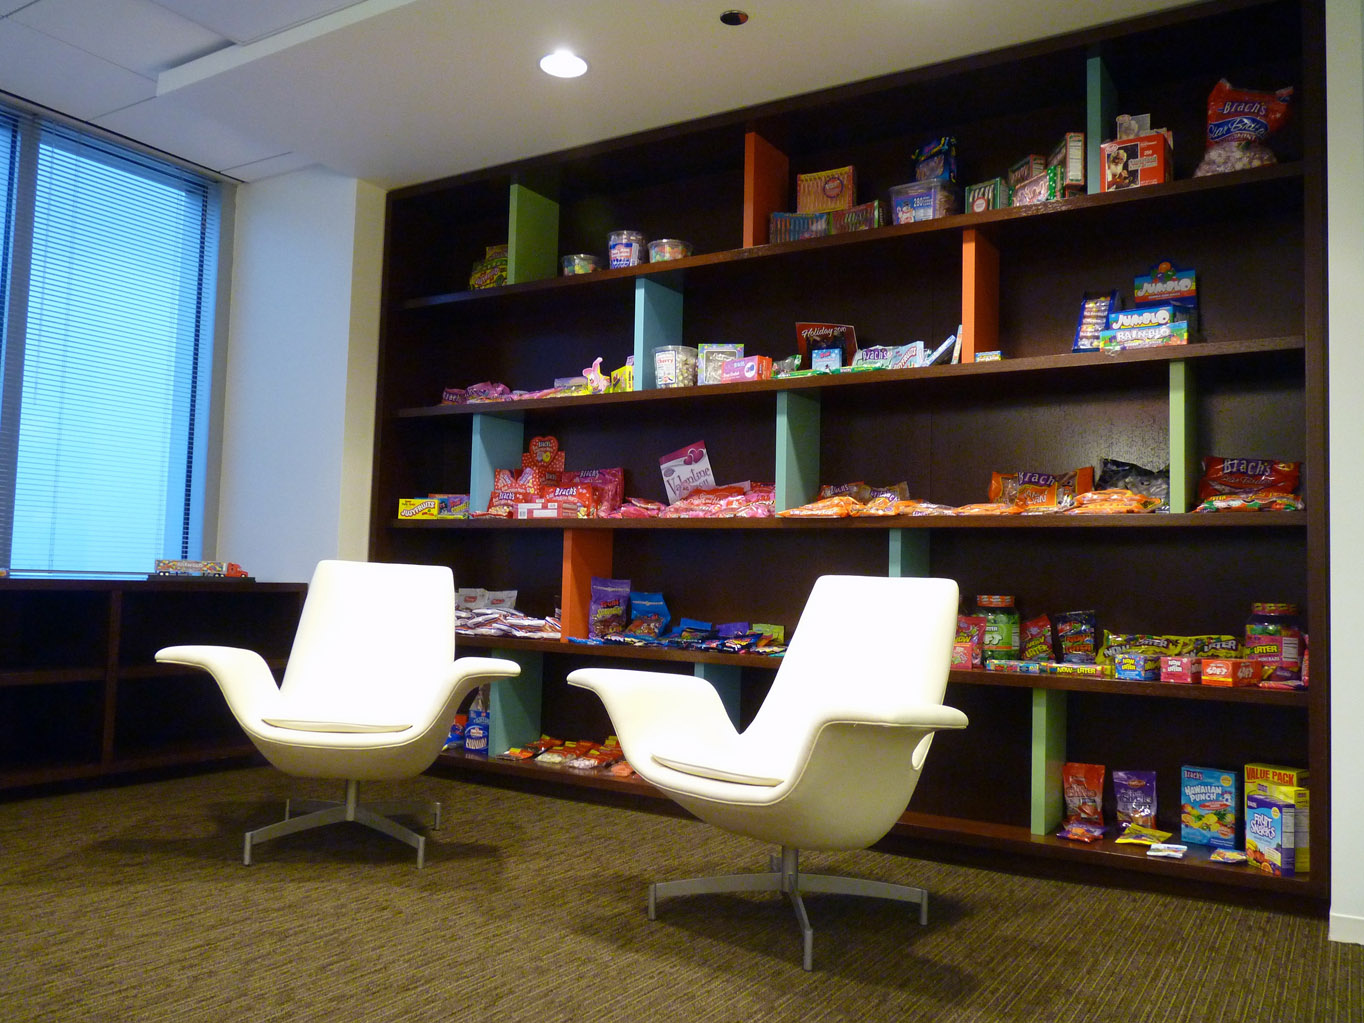 Farley's & Sathers Candy Company - Confection Library